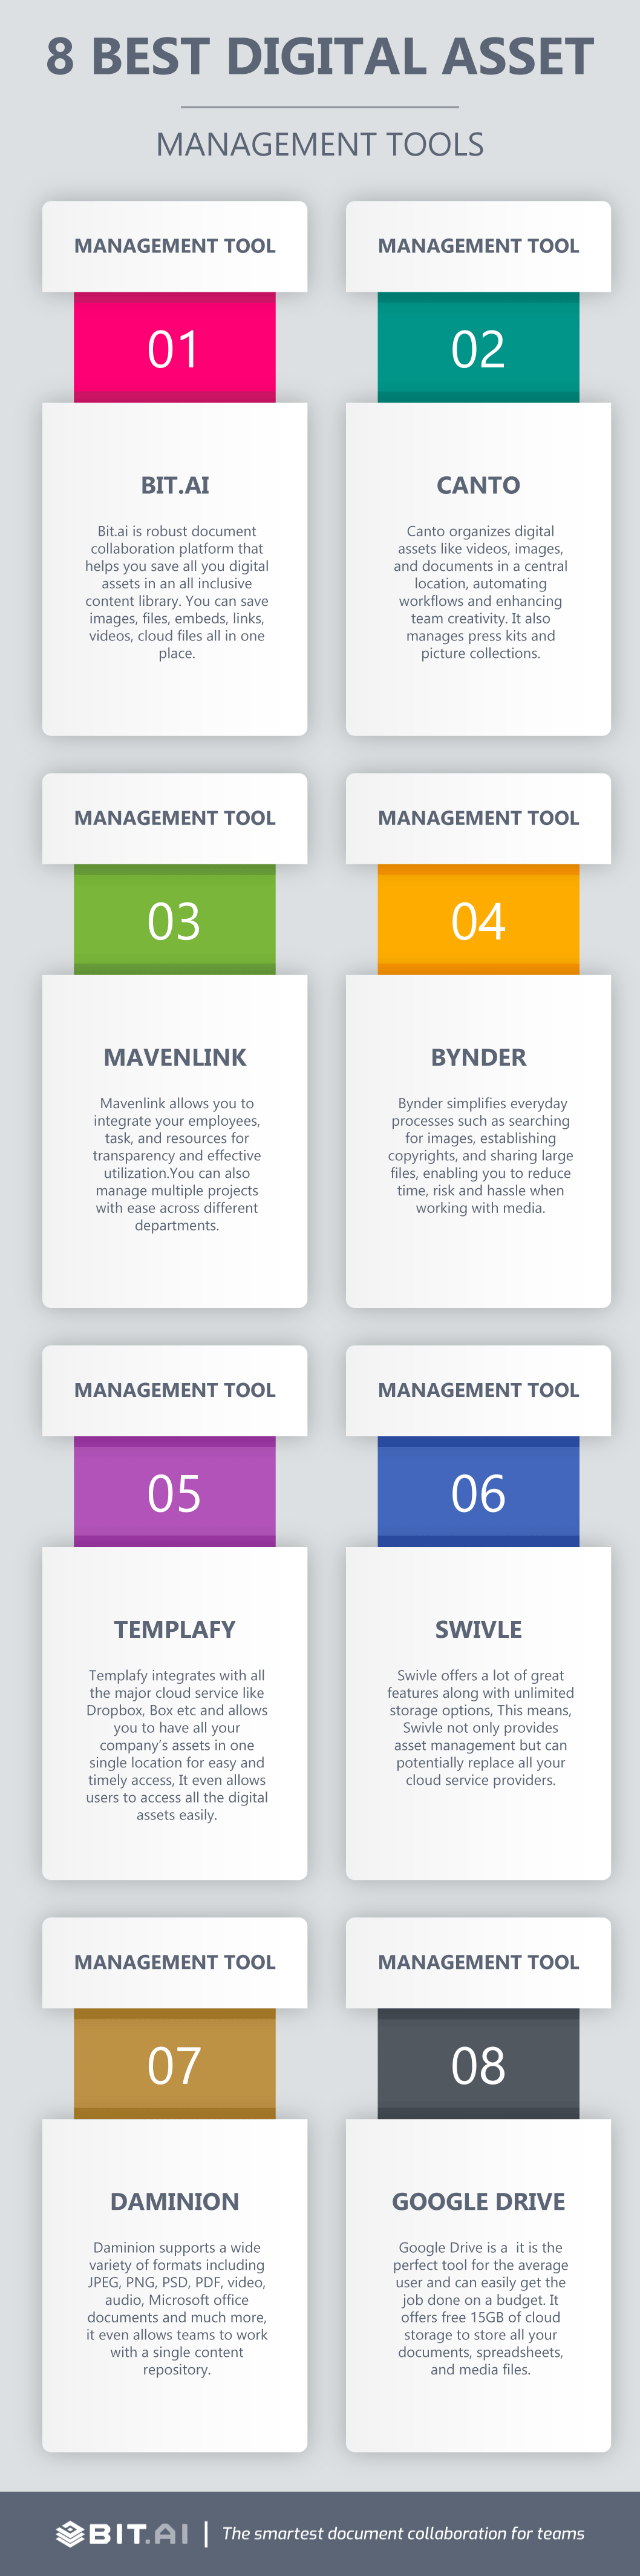 8-Best-Digital-Asset-Management-Tools-Infographic